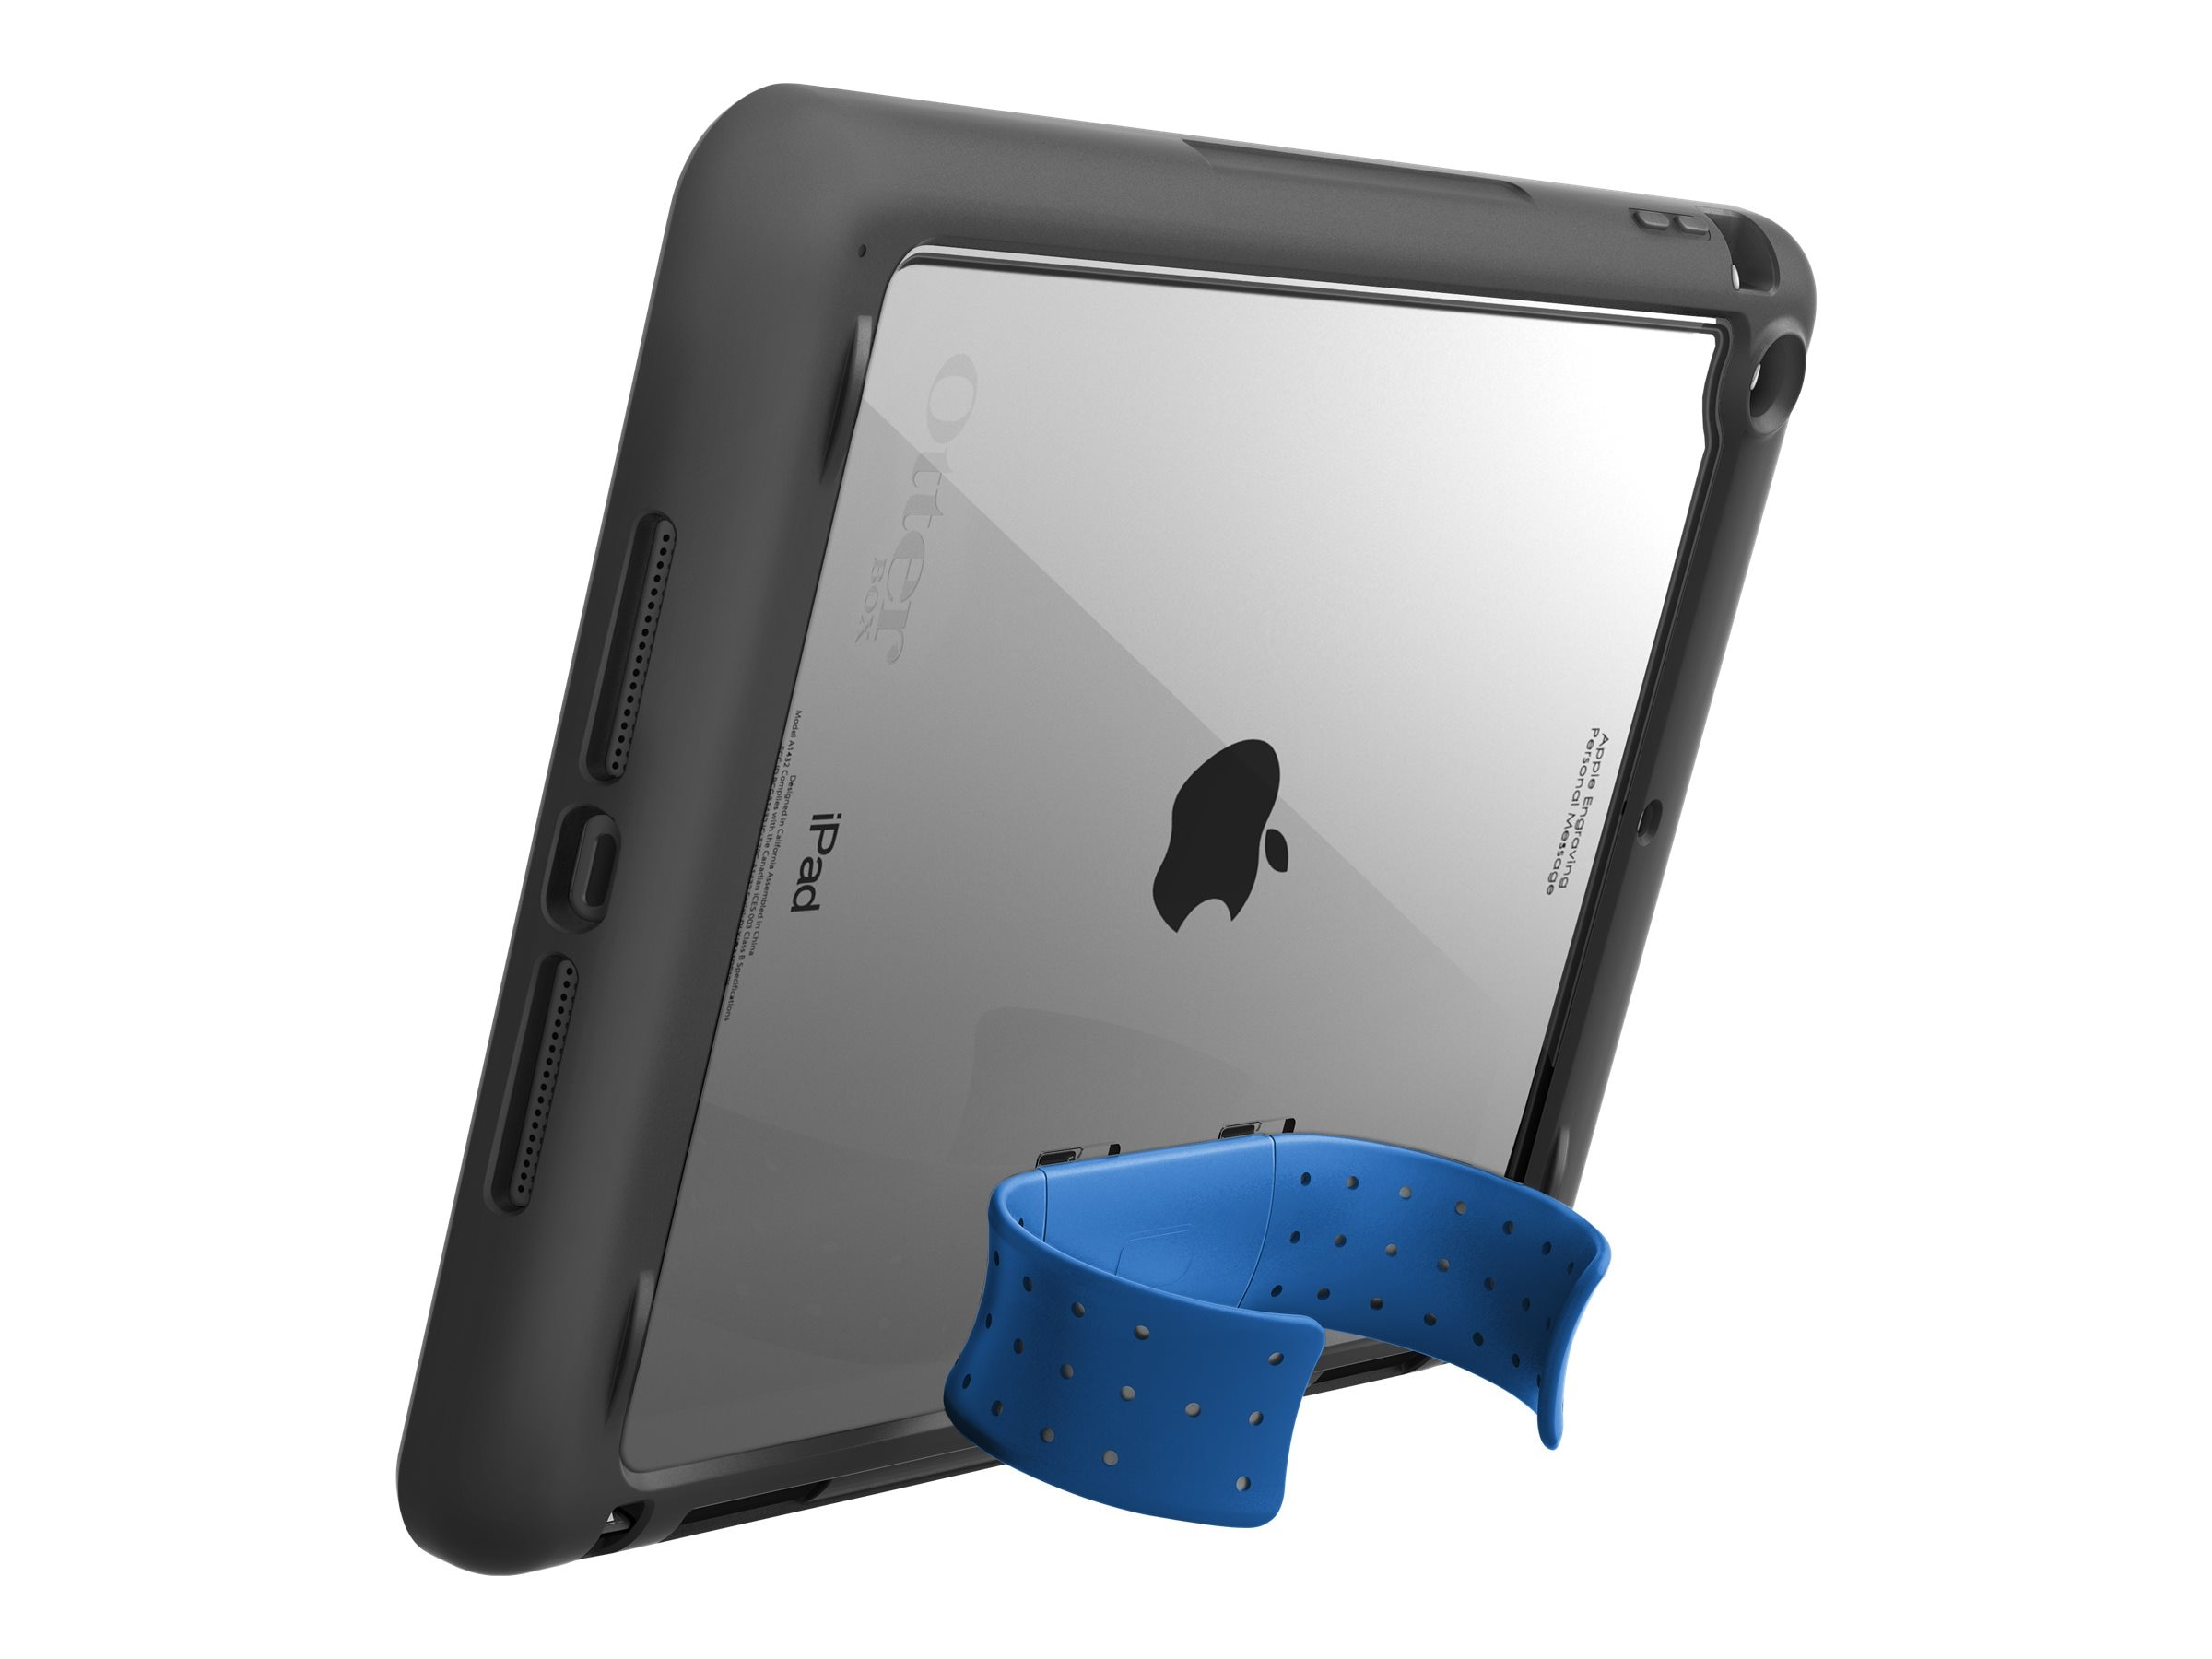 OtterBox Unlimited Stand for iPad Air, Ocean Blue, 78-41168, 18661114, Carrying Cases - Tablets & eReaders